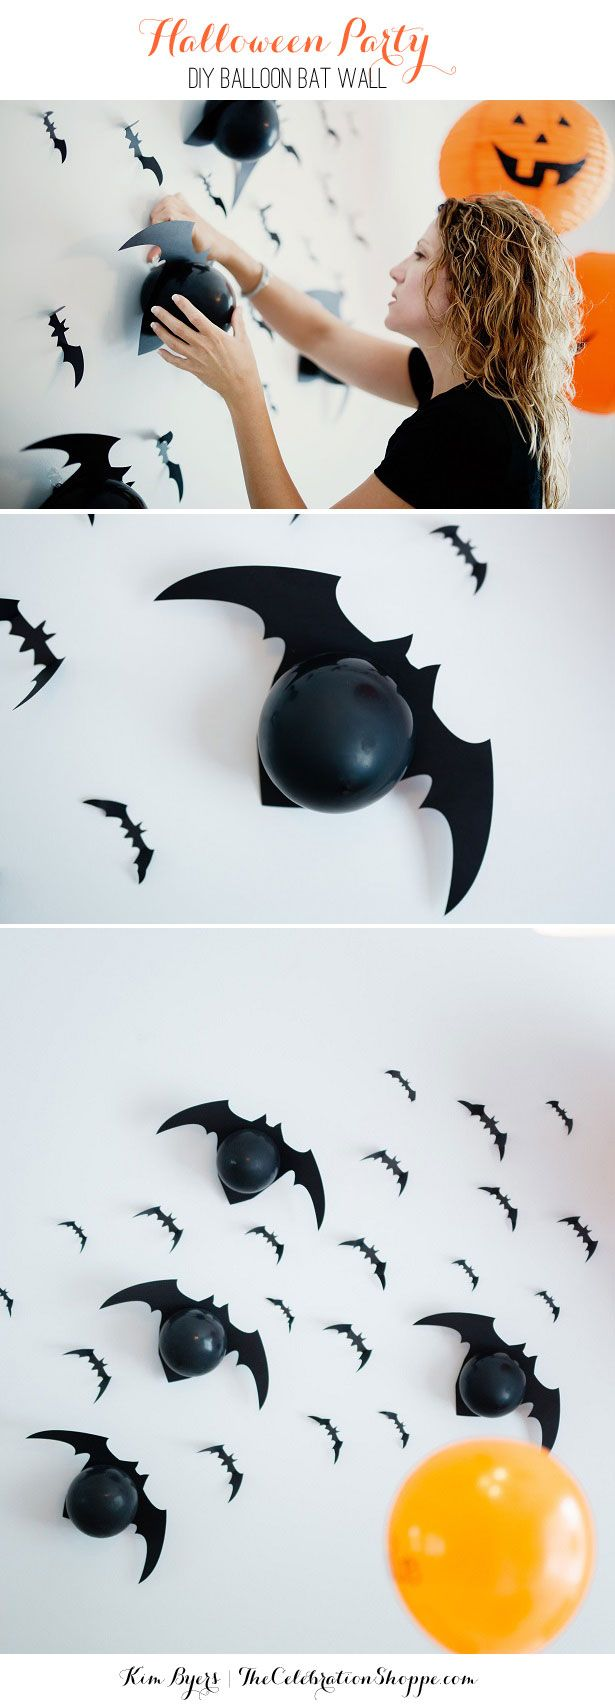 Halloween party decoration ideas diy - How To Make A Wall Of Balloon Bats For Your Halloween Party